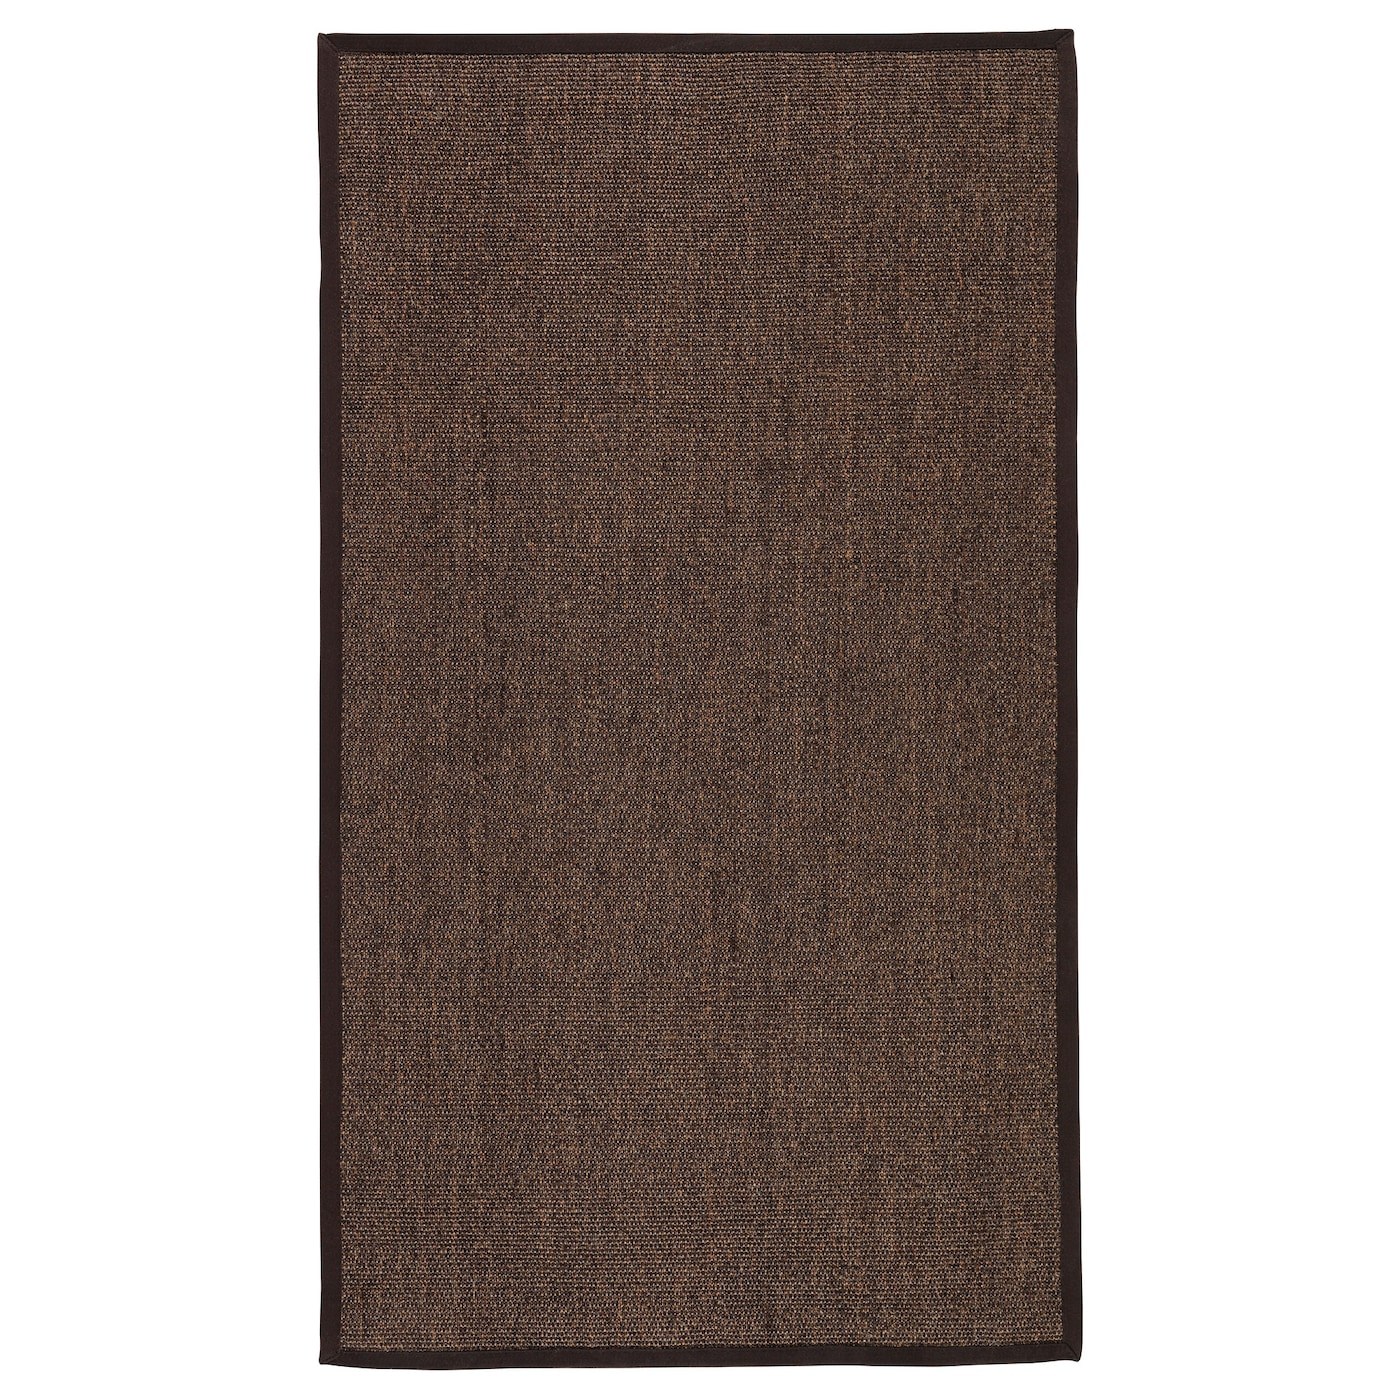 Osted rug flatwoven brown 80x140 cm ikea for Ikea rugs